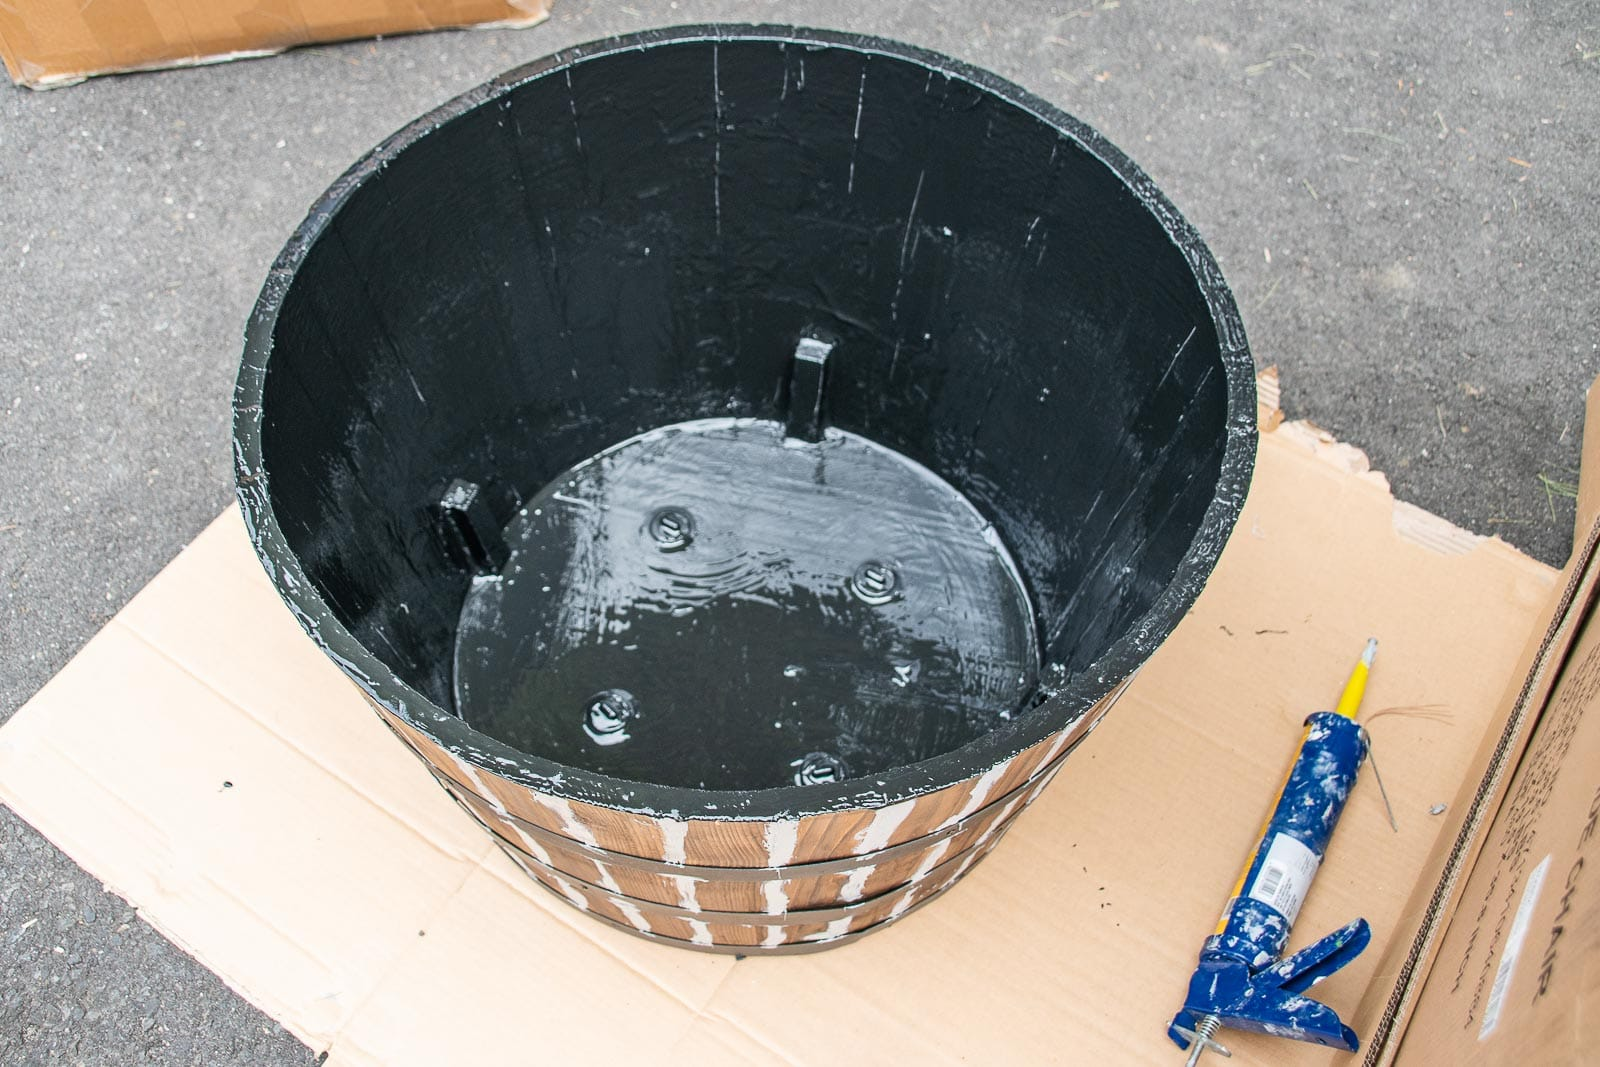 paint the inside of the barrel planter with flex sael